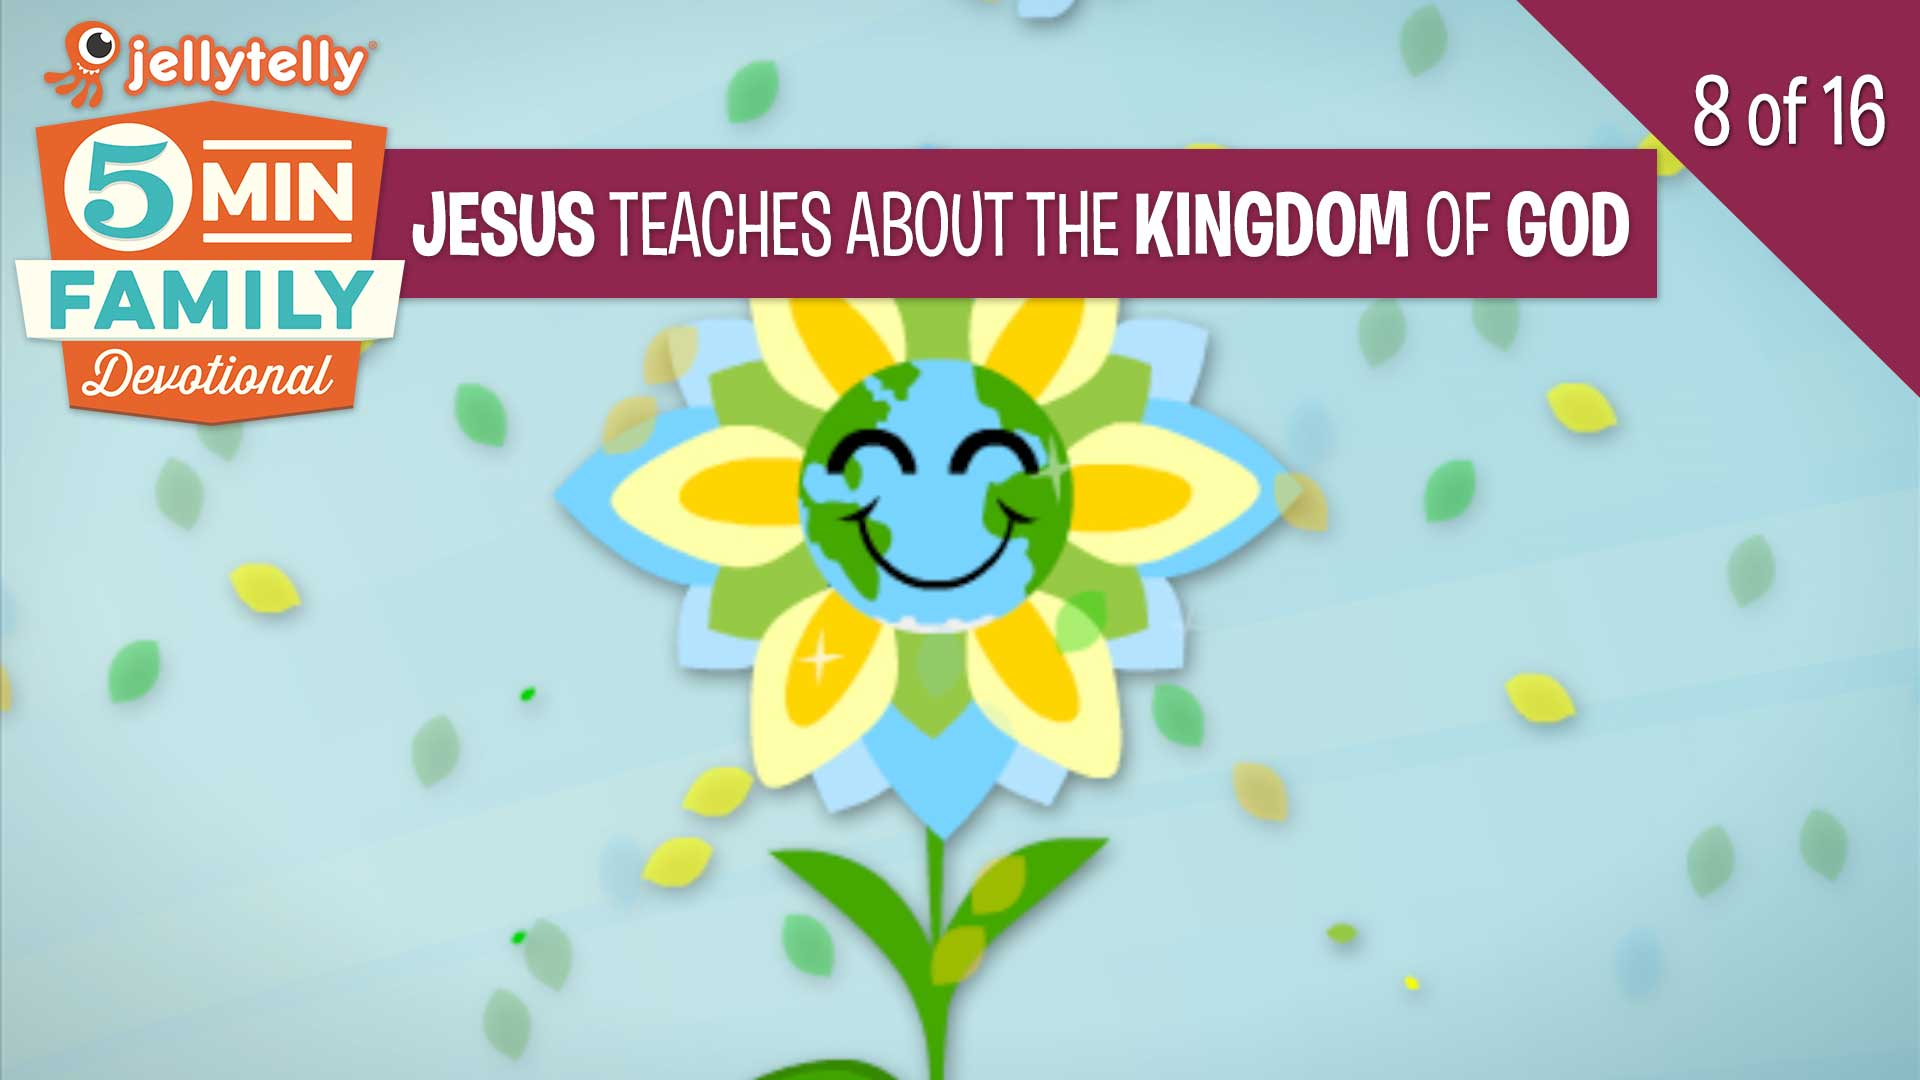 5mfd jesus day 08 featured preview image